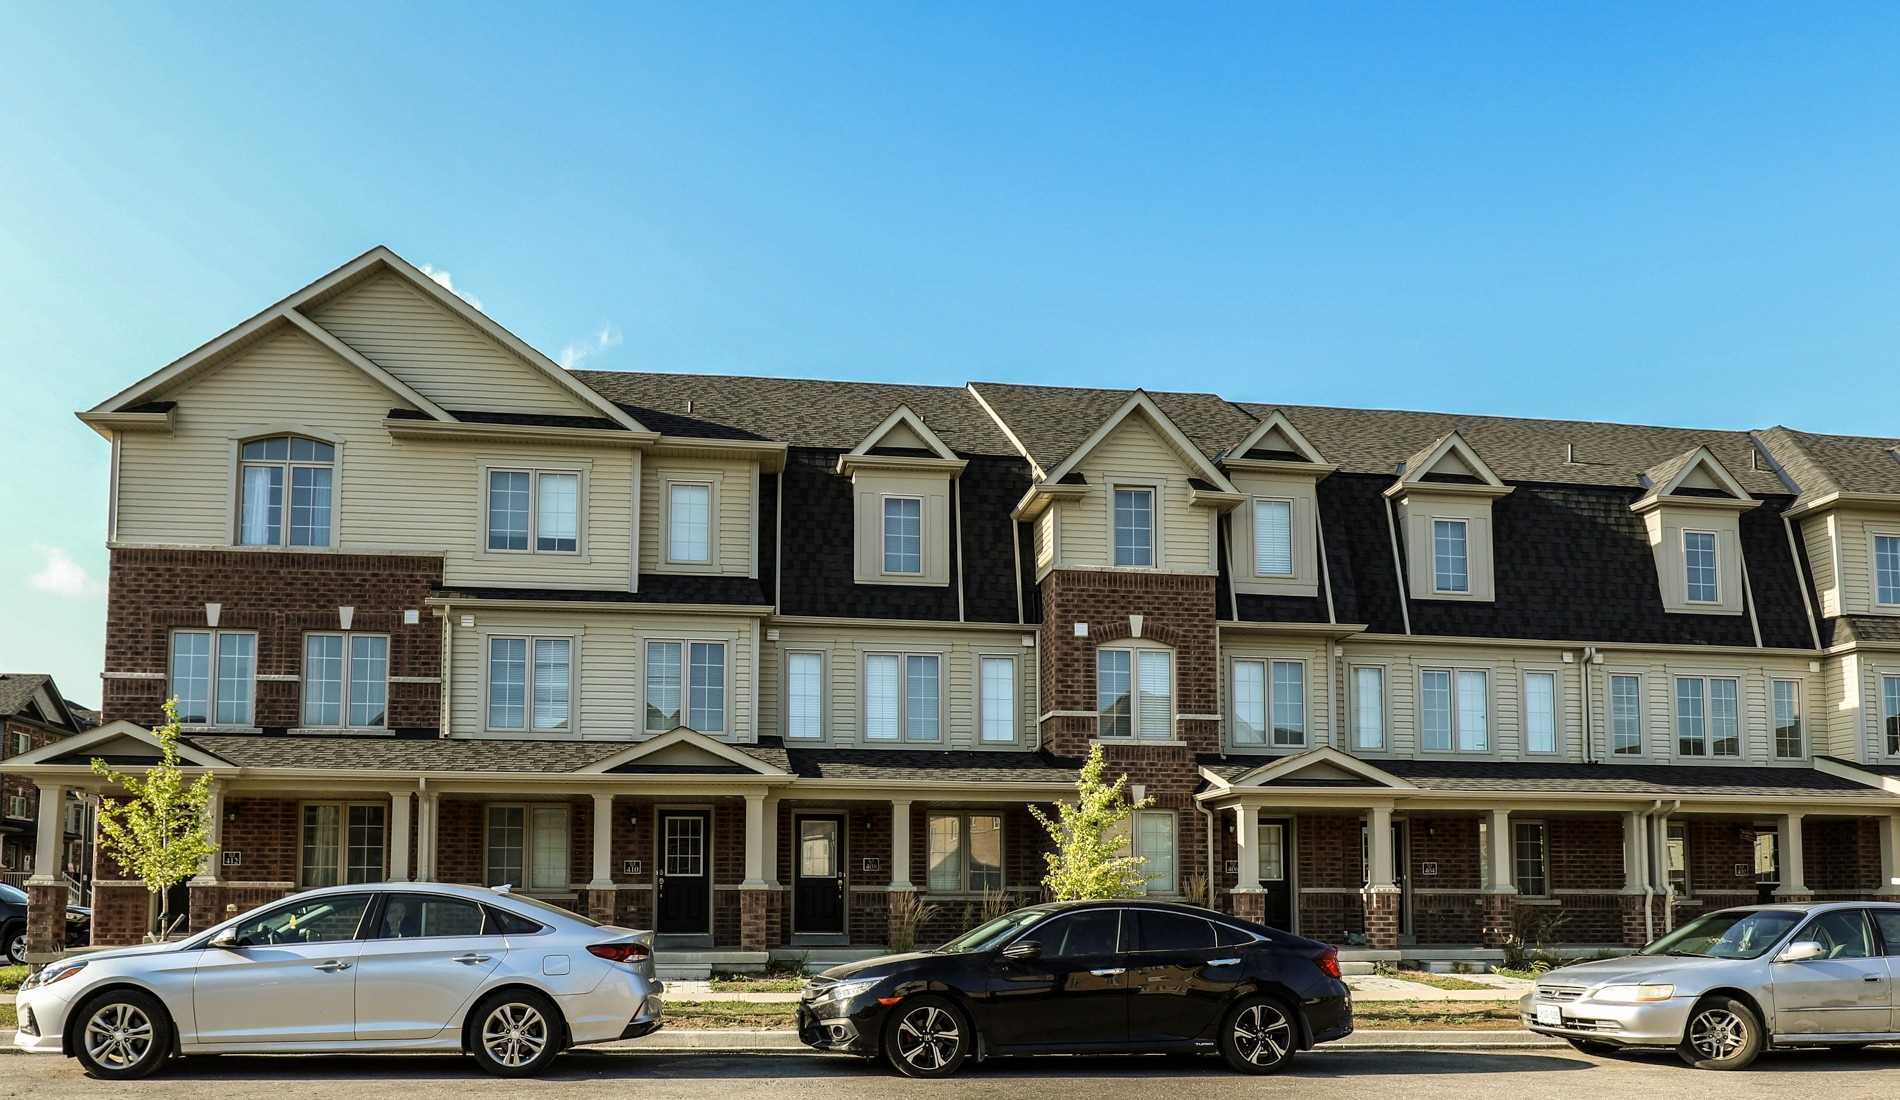 Free Hold Town House - Only 2 Years New. Very Well Kept 4 Bedrooms & 3 Washrooms Townhouse Near Conestoga College. It Is A Great Opportunity For The First Time Home Buyers Or Investors With Positive Cash Flow Income. Very Close To Hwy 401 & All The Amenities. The House Has Garage Door Opener With Remote, Central Vacuum Rough-In. Full Of Sun Light. Master Bedroom With En-Suite & Also 3 Spacious Bedrooms. Market Rent In The Area Is Approx $2800.